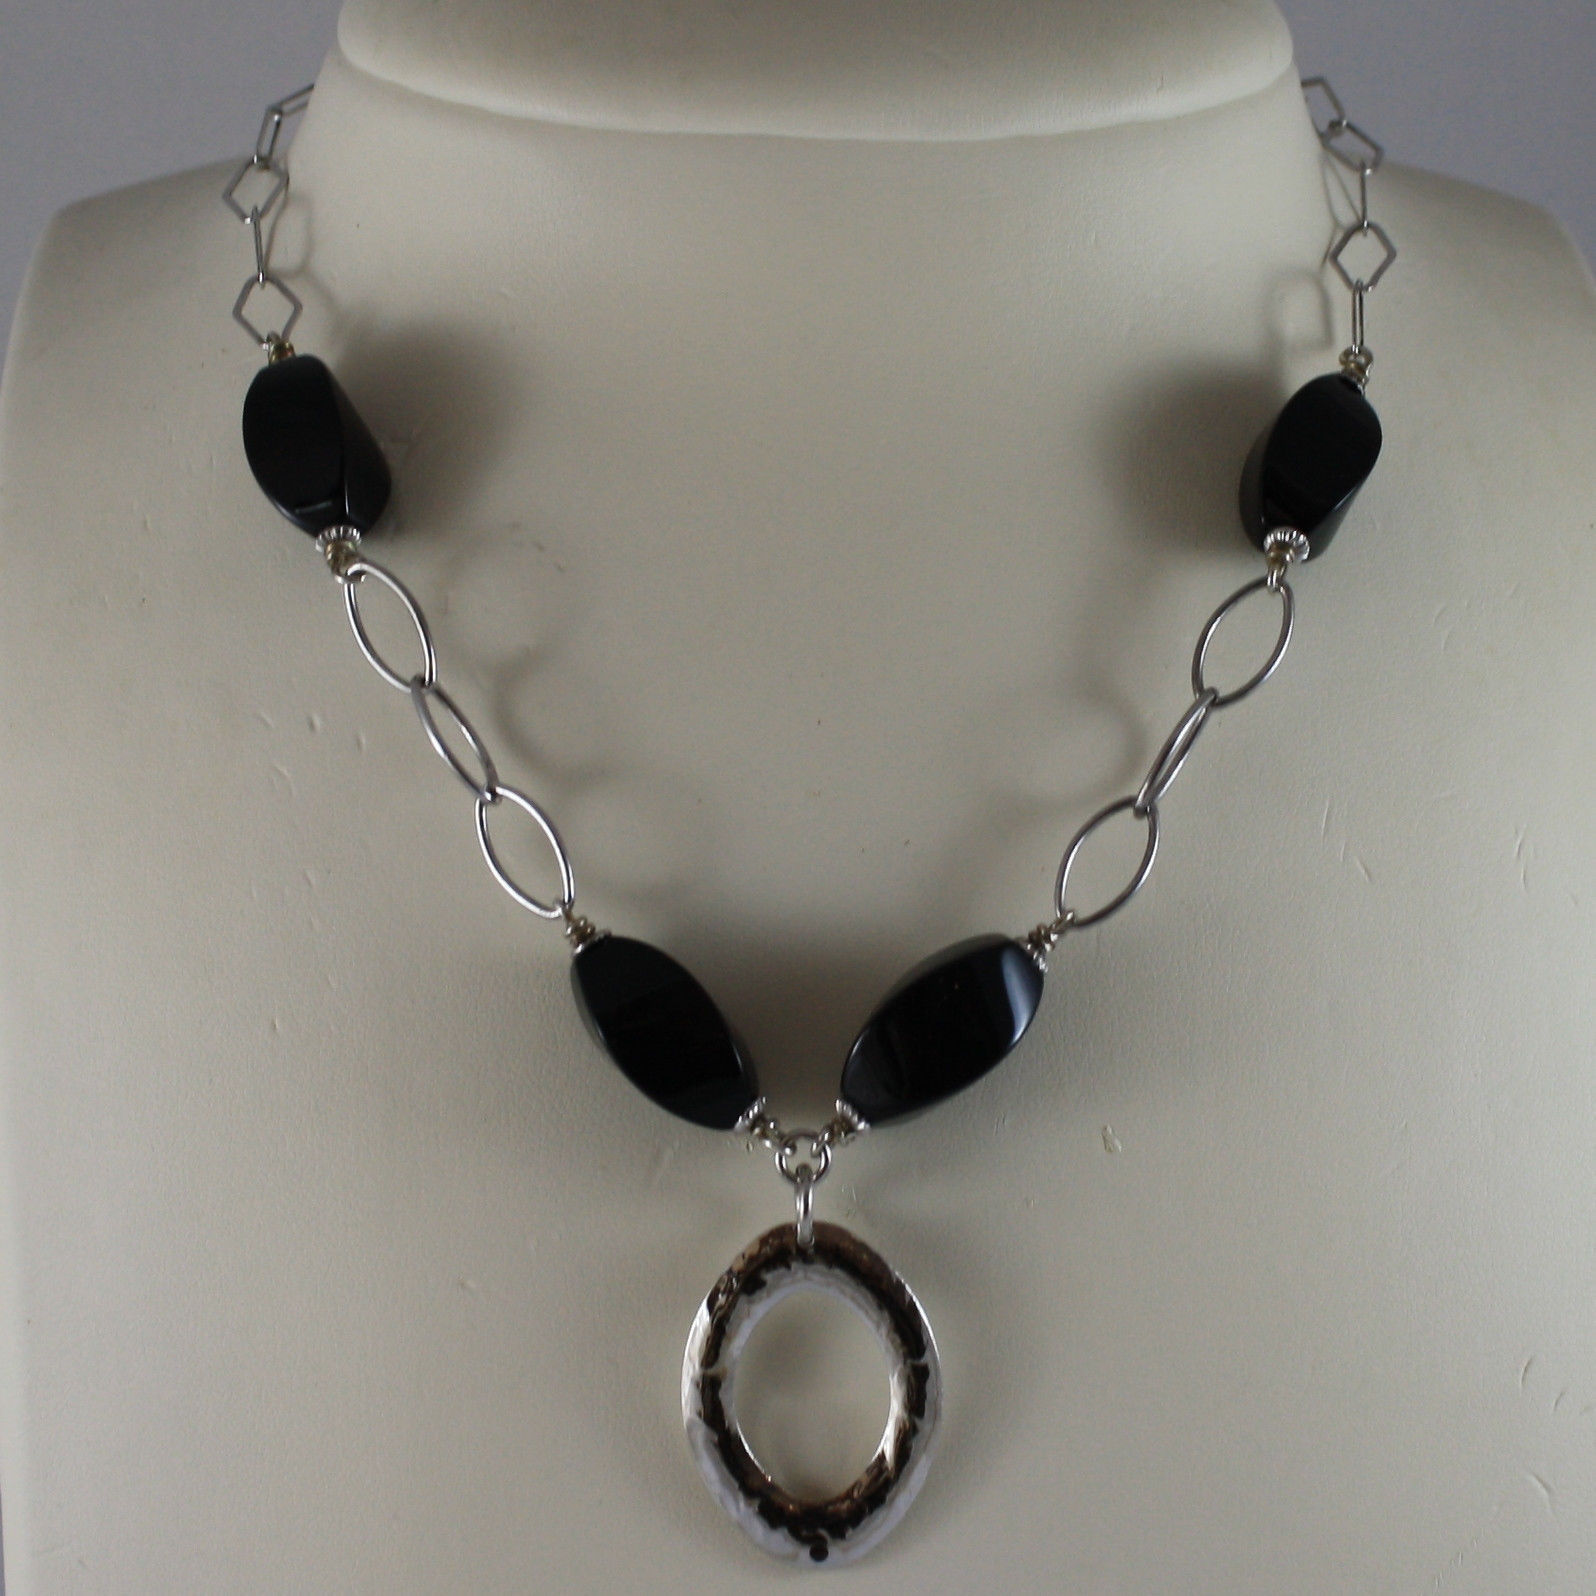 .925 SILVER RHODIUM NECKLACE WITH BLACK ONYX AND OVAL PENDANT